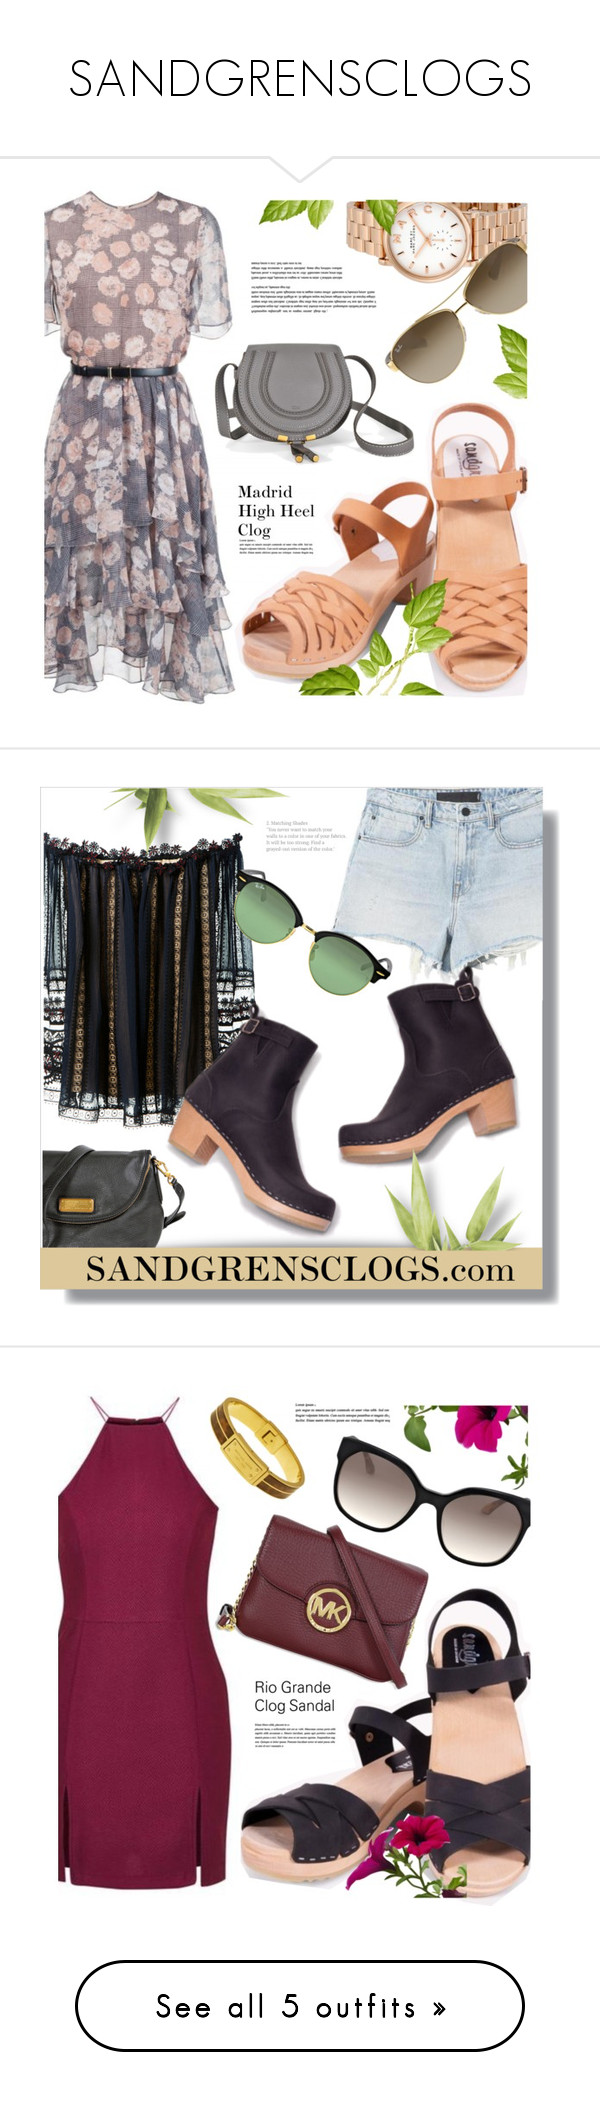 """""""SANDGRENSCLOGS"""" by monmondefou ❤ liked on Polyvore featuring Jason Wu, Marc by Marc Jacobs, Ray-Ban, Sandgrensclogs, Chloé, Topshop, Prada, Chicwish, Cédric Charlier and Monsoon"""